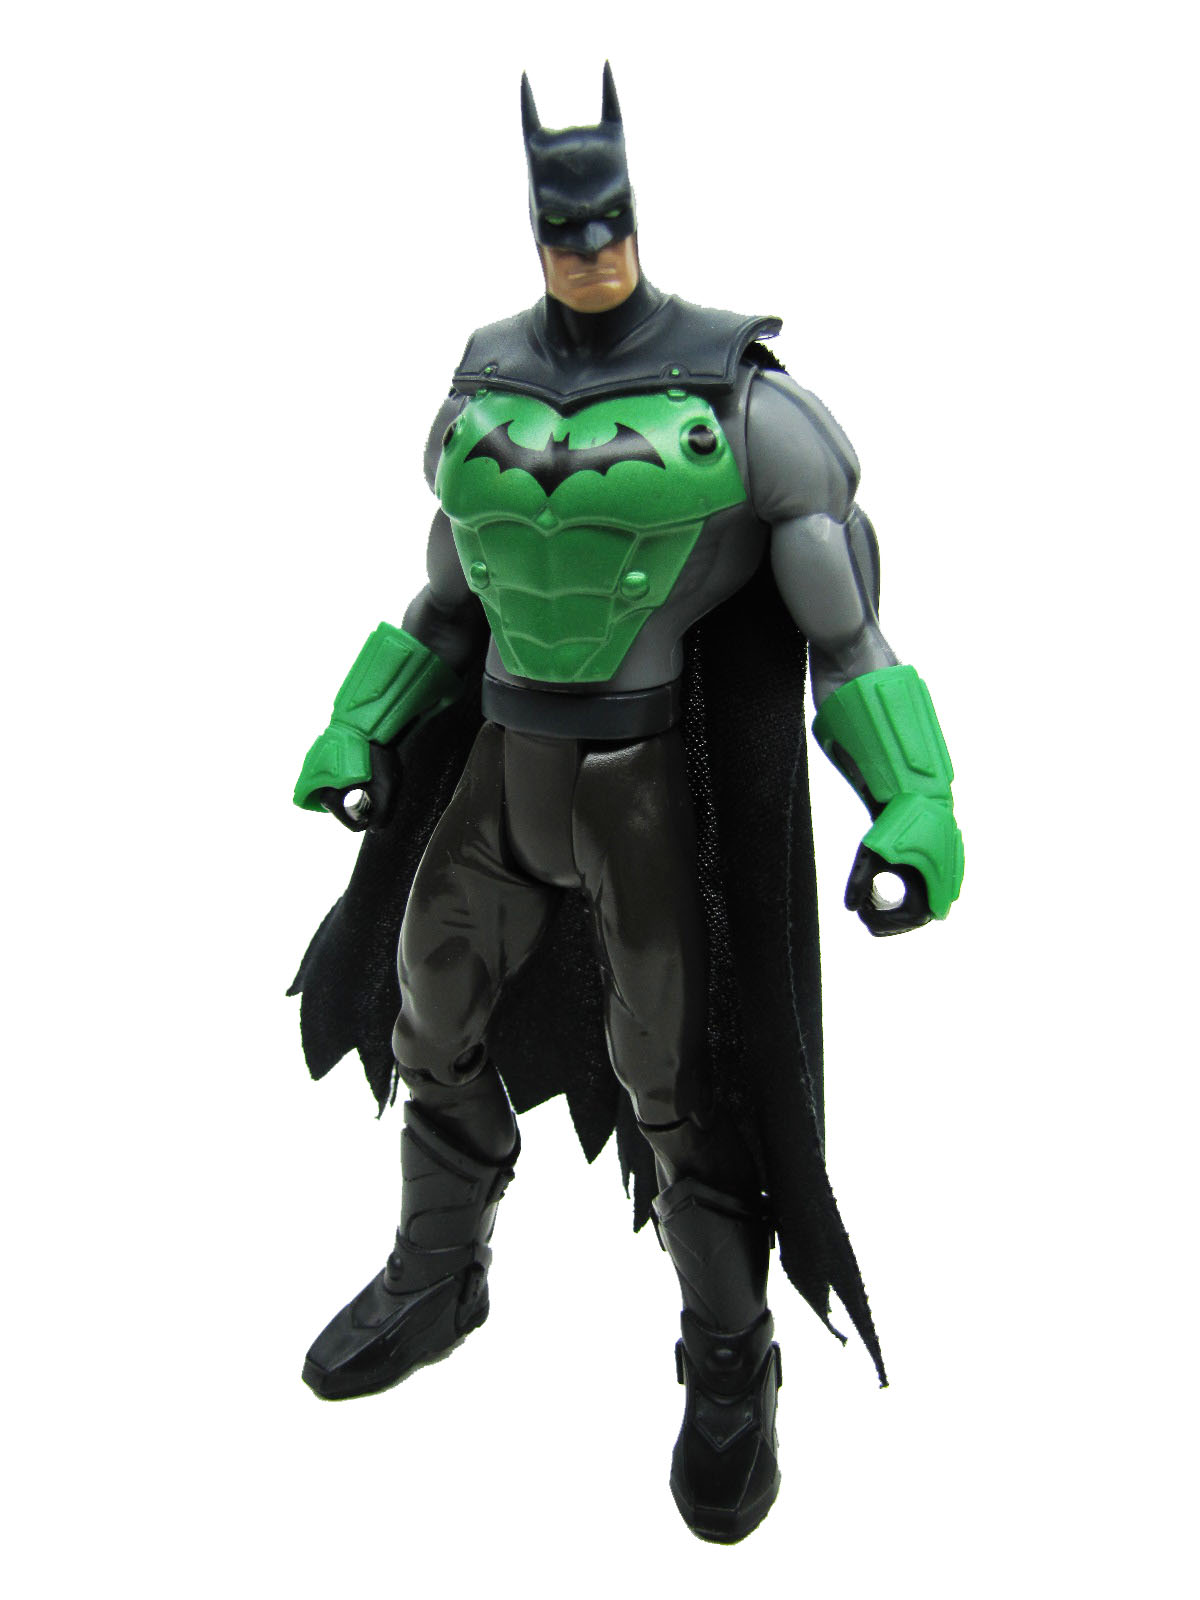 2003 Batman DC Super Heroes BRUCE WAYNE TO CROCODILE ARMOR BATMAN Complete